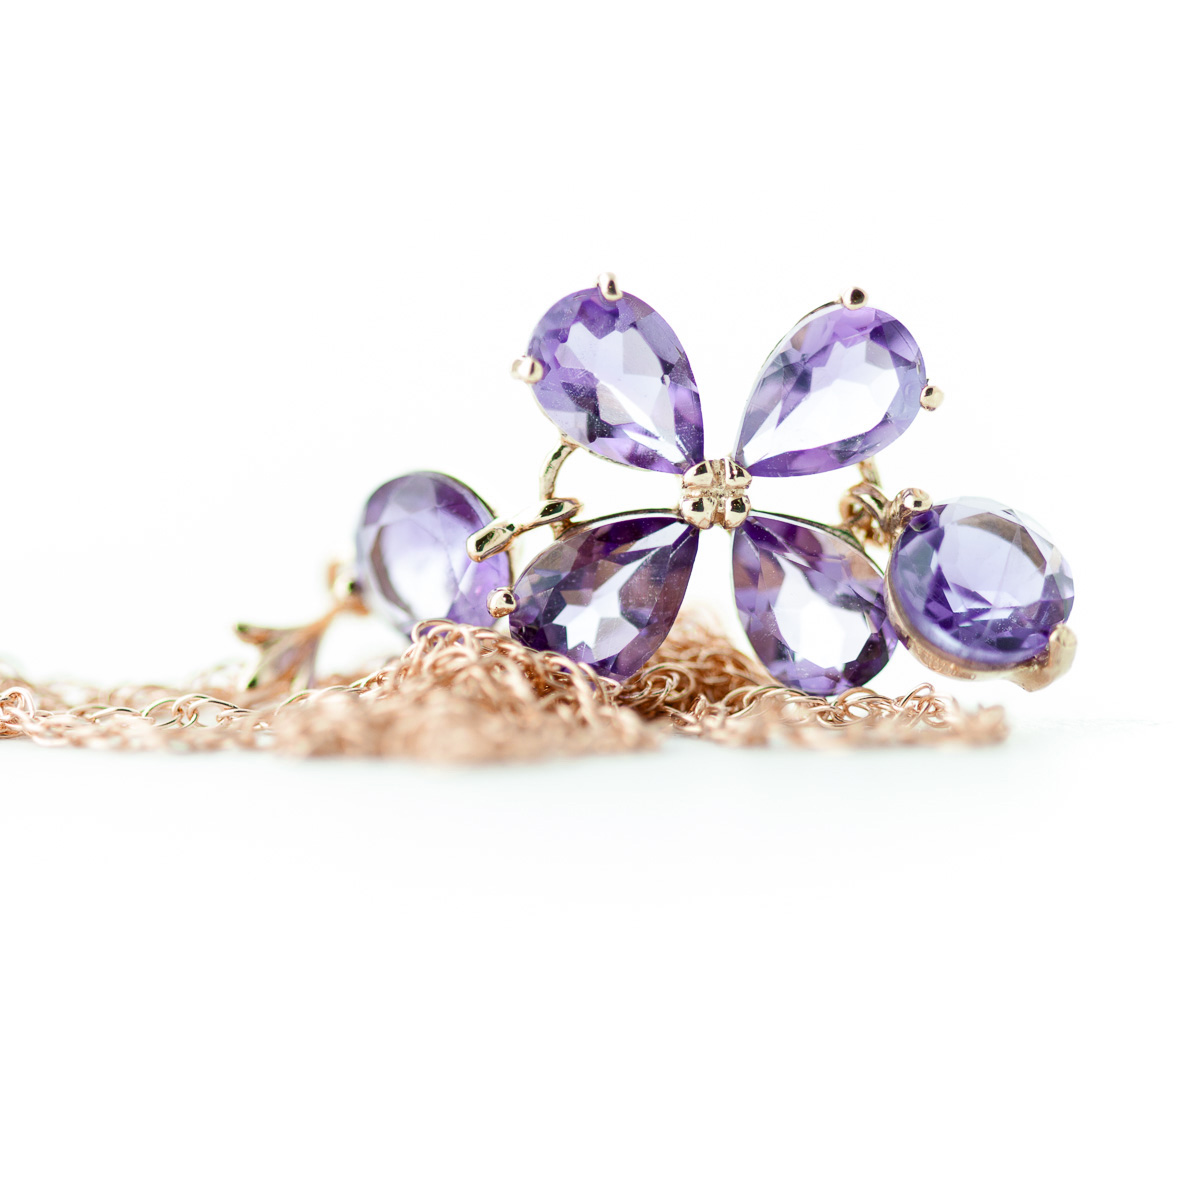 Amethyst Blossom Pendant Necklace 3.15ctw in 14K Rose Gold